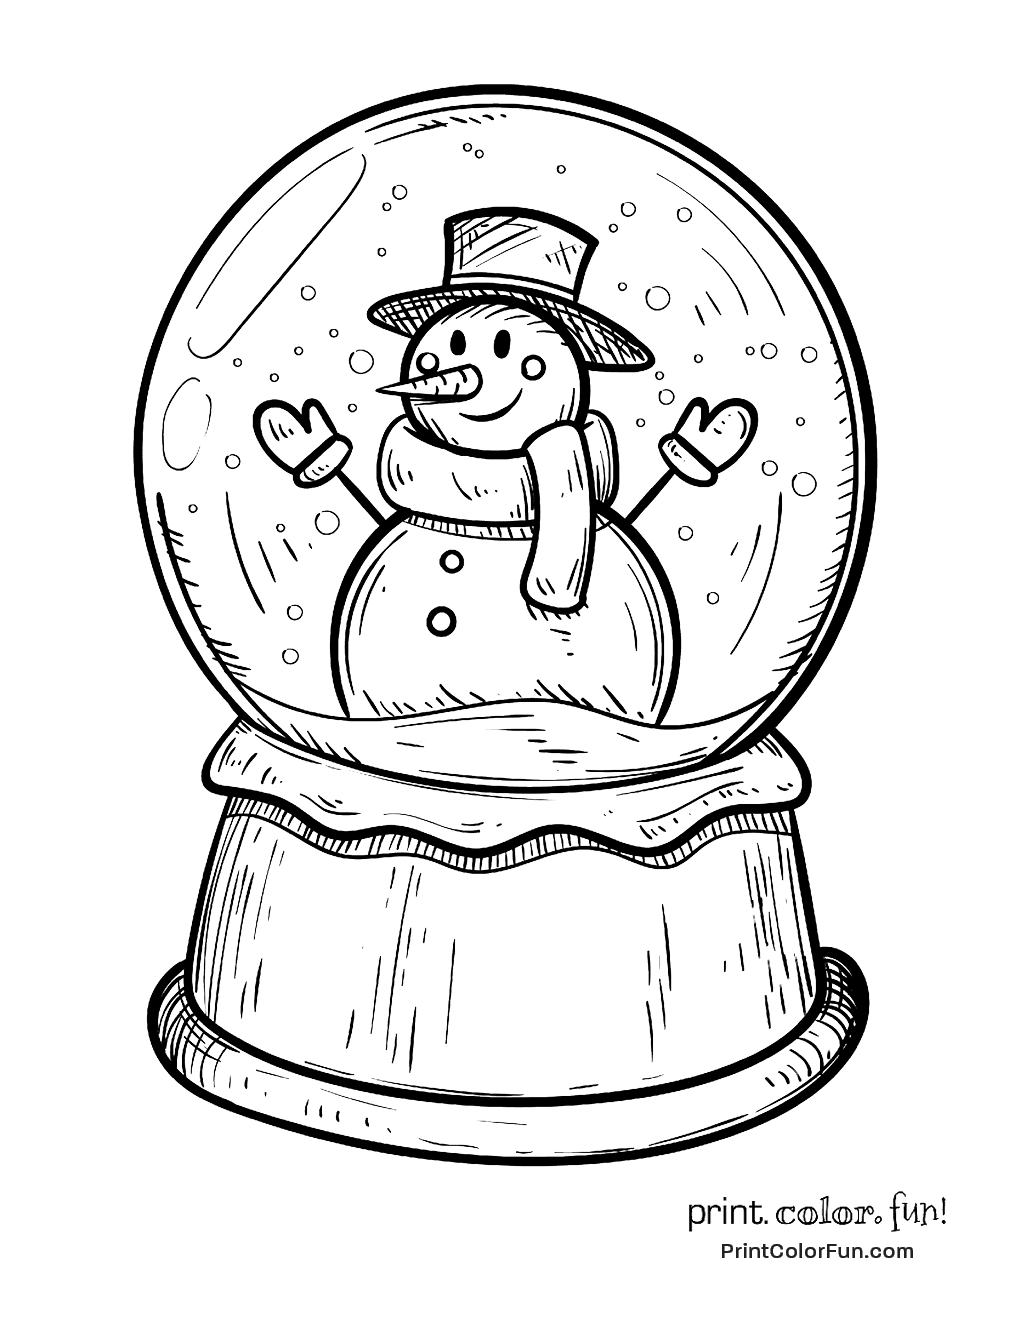 Winter snow globe with snowman